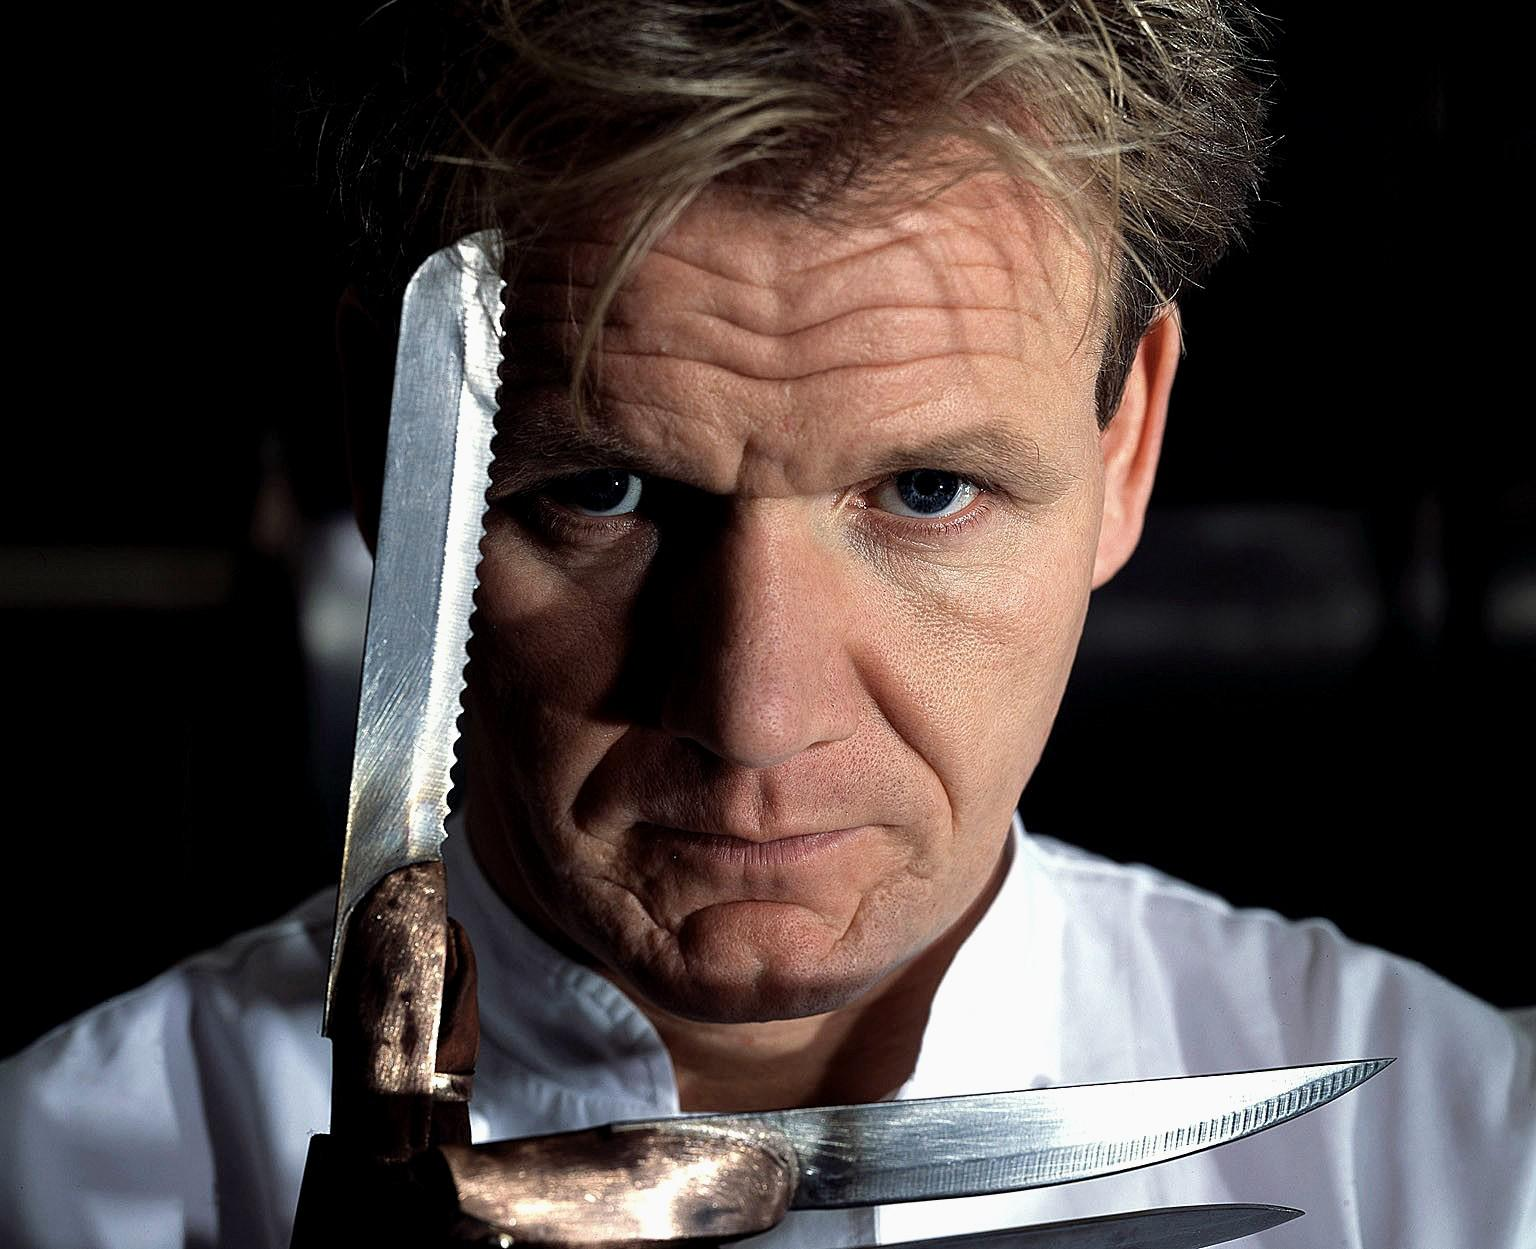 Gordon Ramsay new cooking show